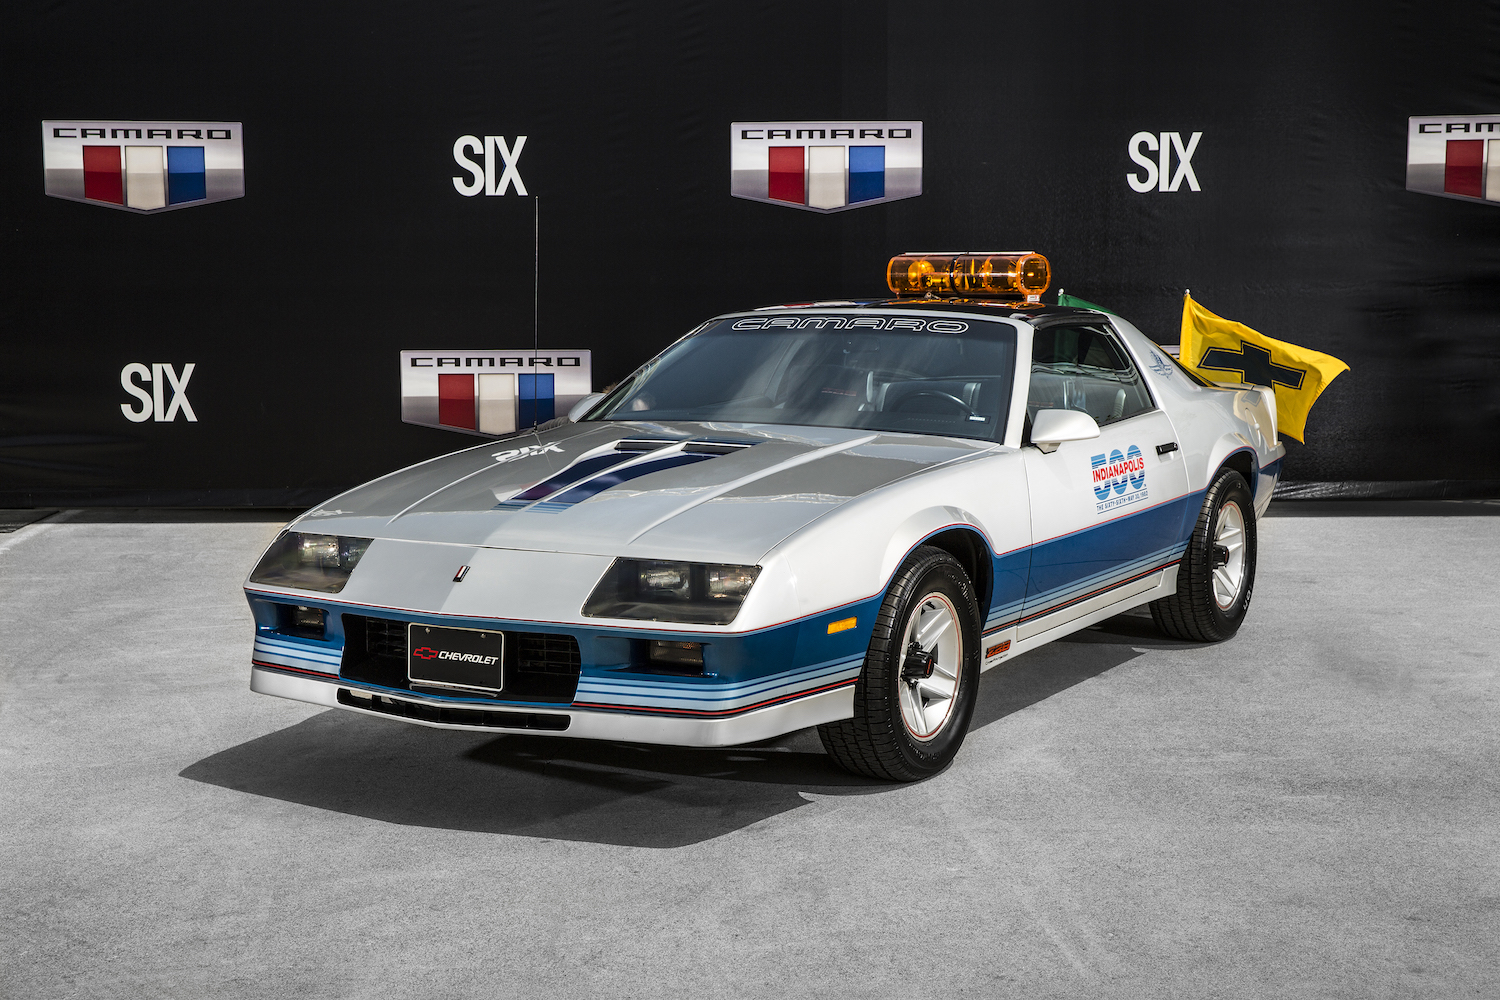 1982 Chevrolet Camaro Indy Pace Car